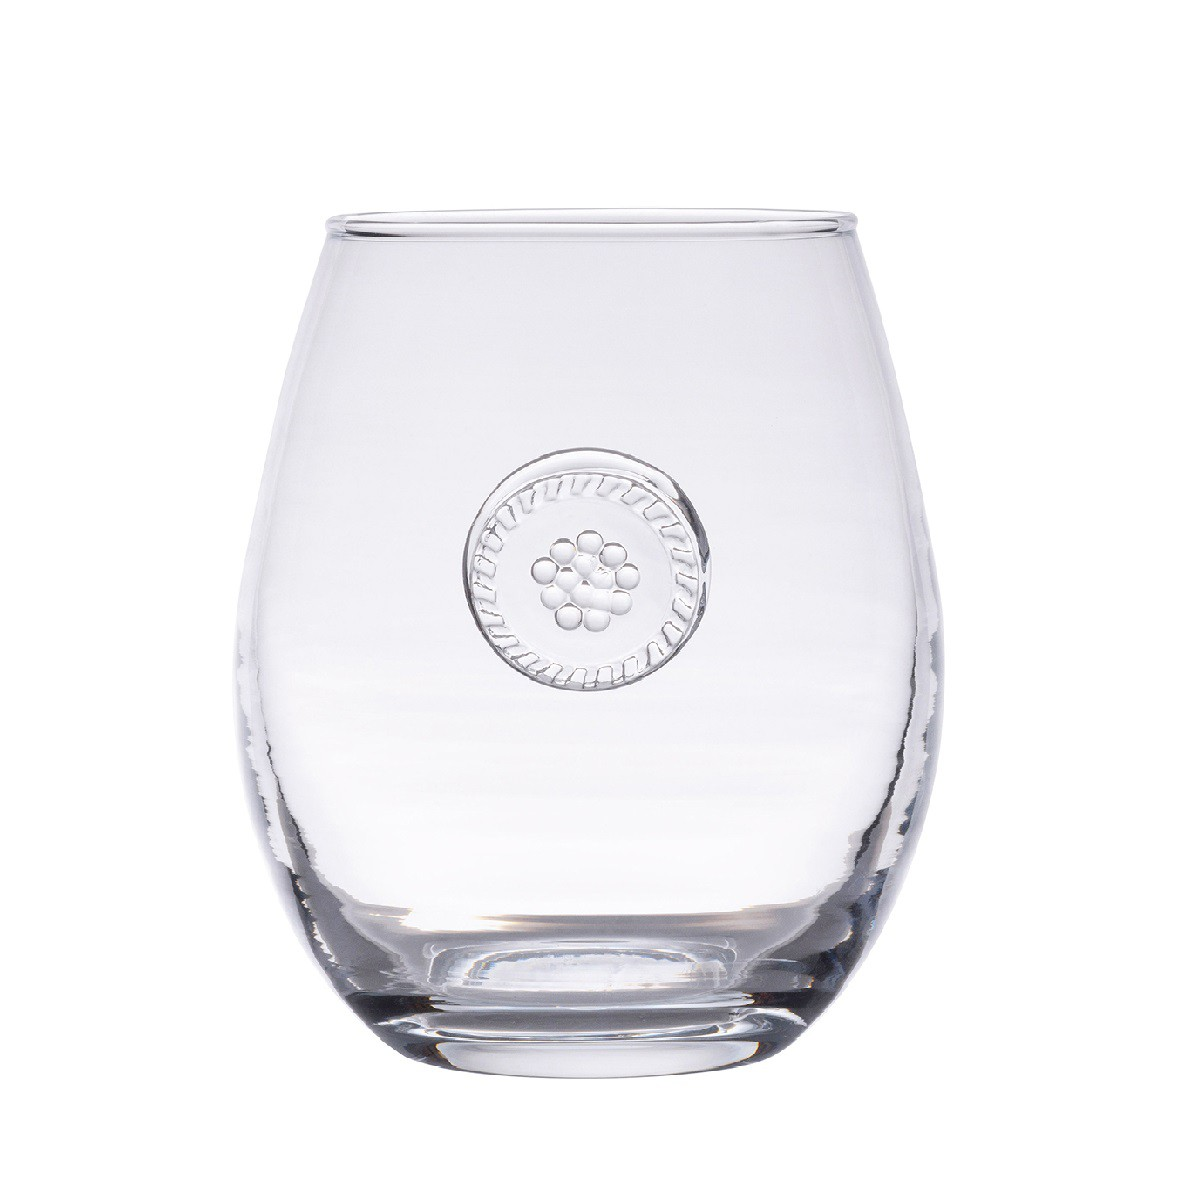 28013 - Berry & Thread Stemless Wine Glasses (8) - $28/each -